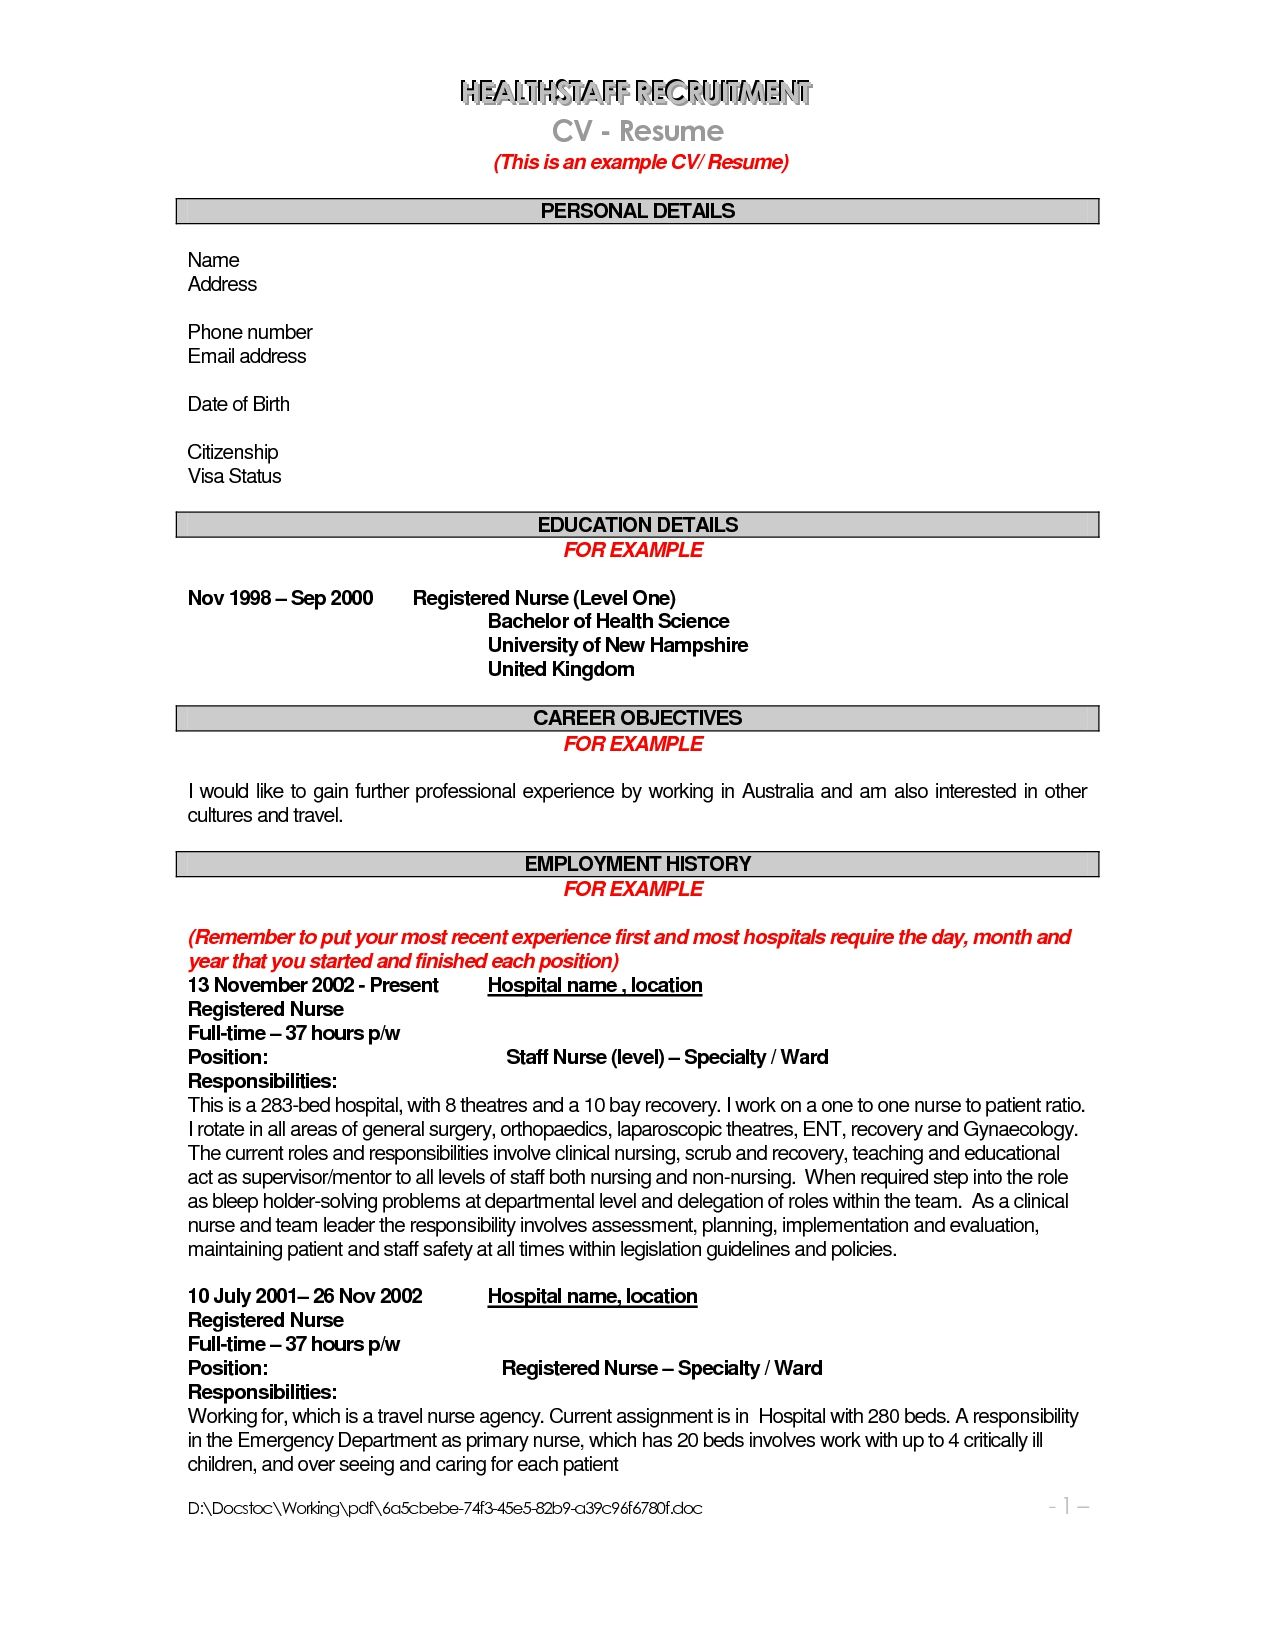 resume job description cover letter template sample resumes administration - Cover Letter For Resume Format